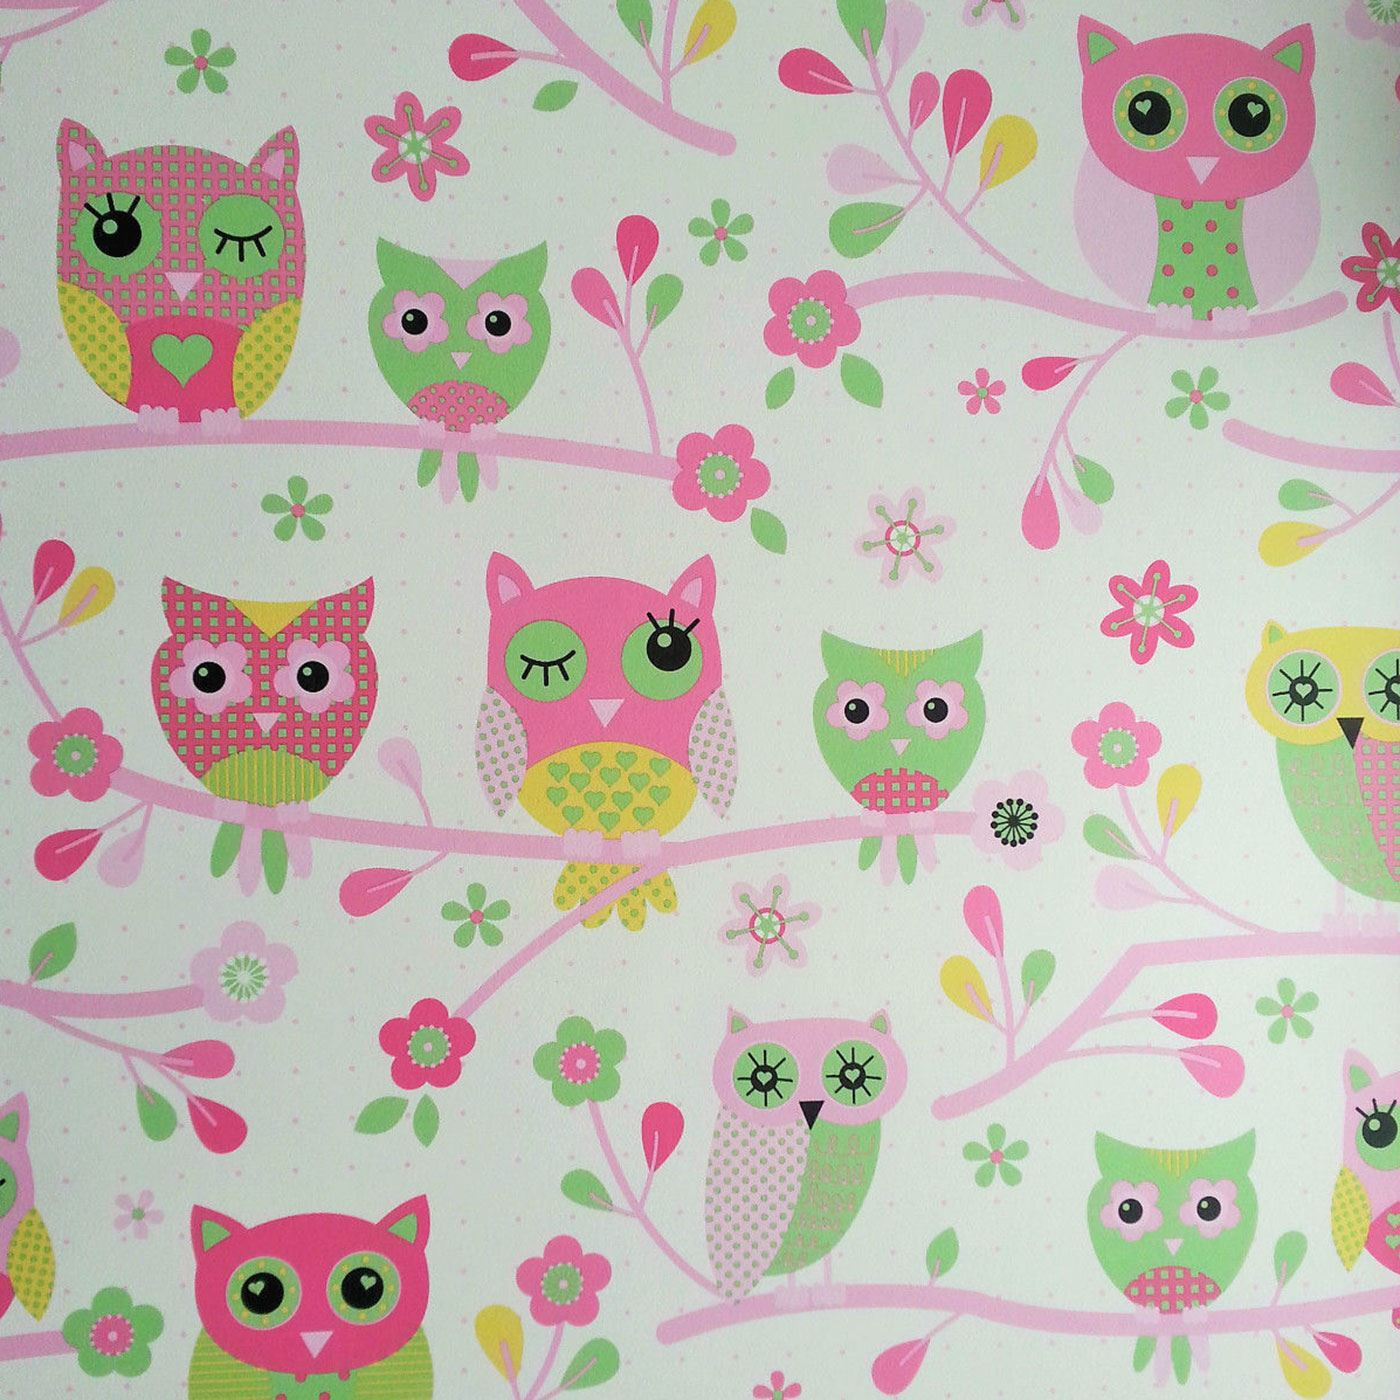 Details about OWLS WALLPAPER - PINK - 6327 DEBONA NEW GIRLS